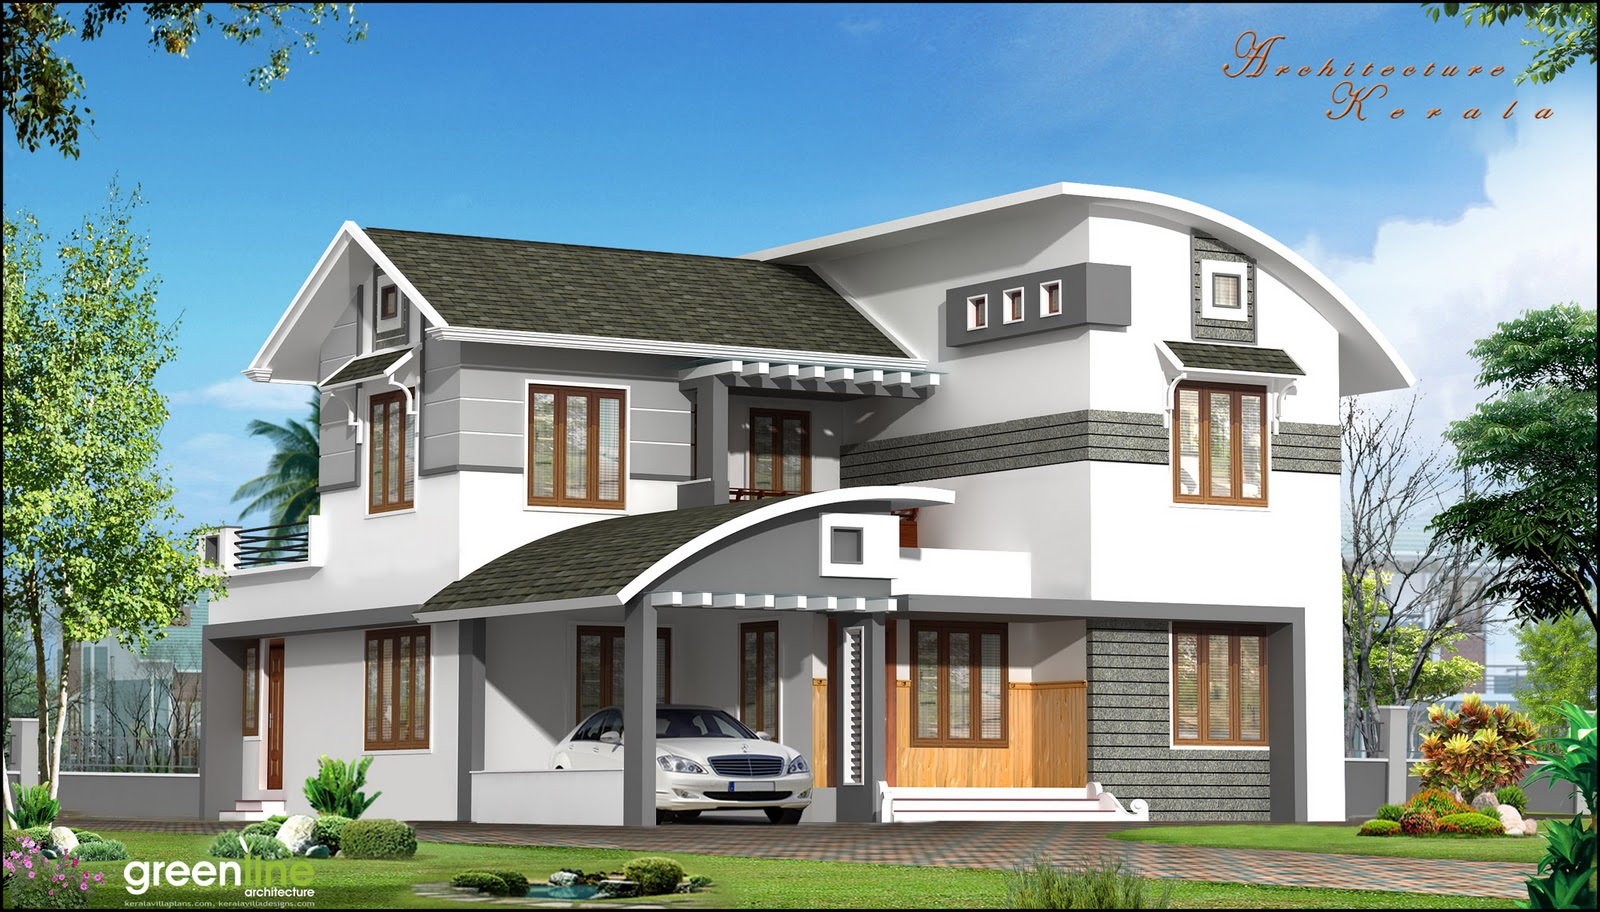 Architecture kerala a beautiful house elevation for Home architecture design kerala